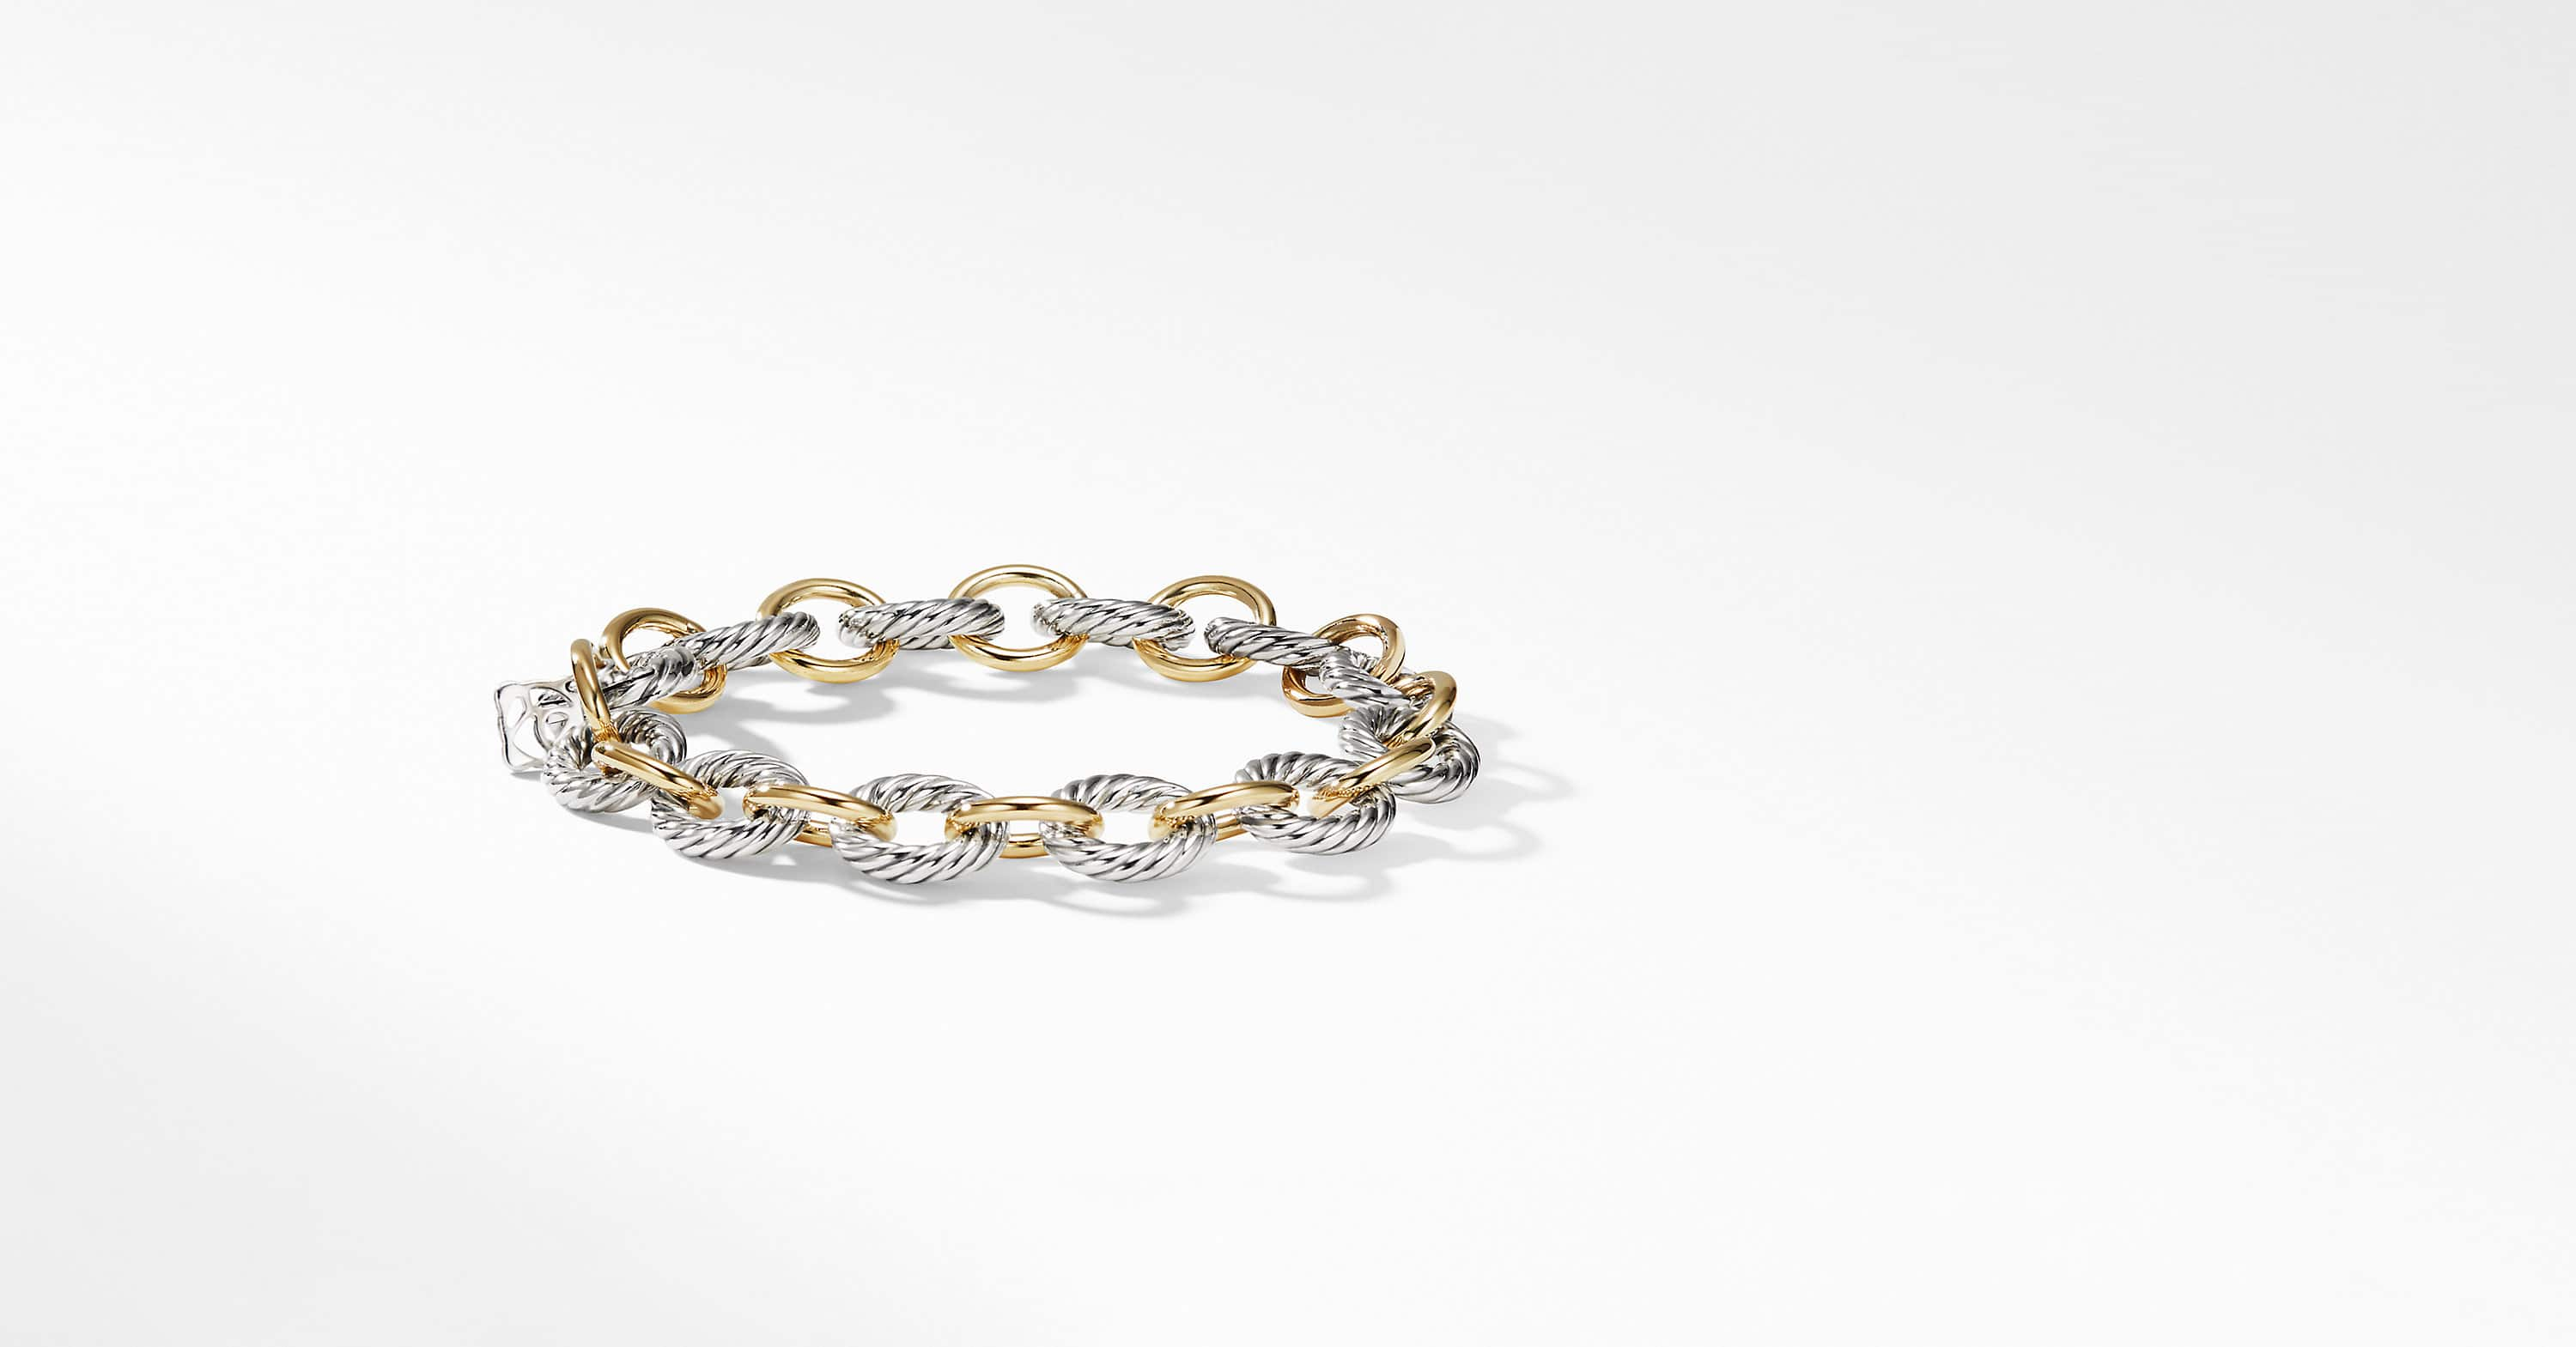 Medium Oval Link Bracelet with 18K Gold